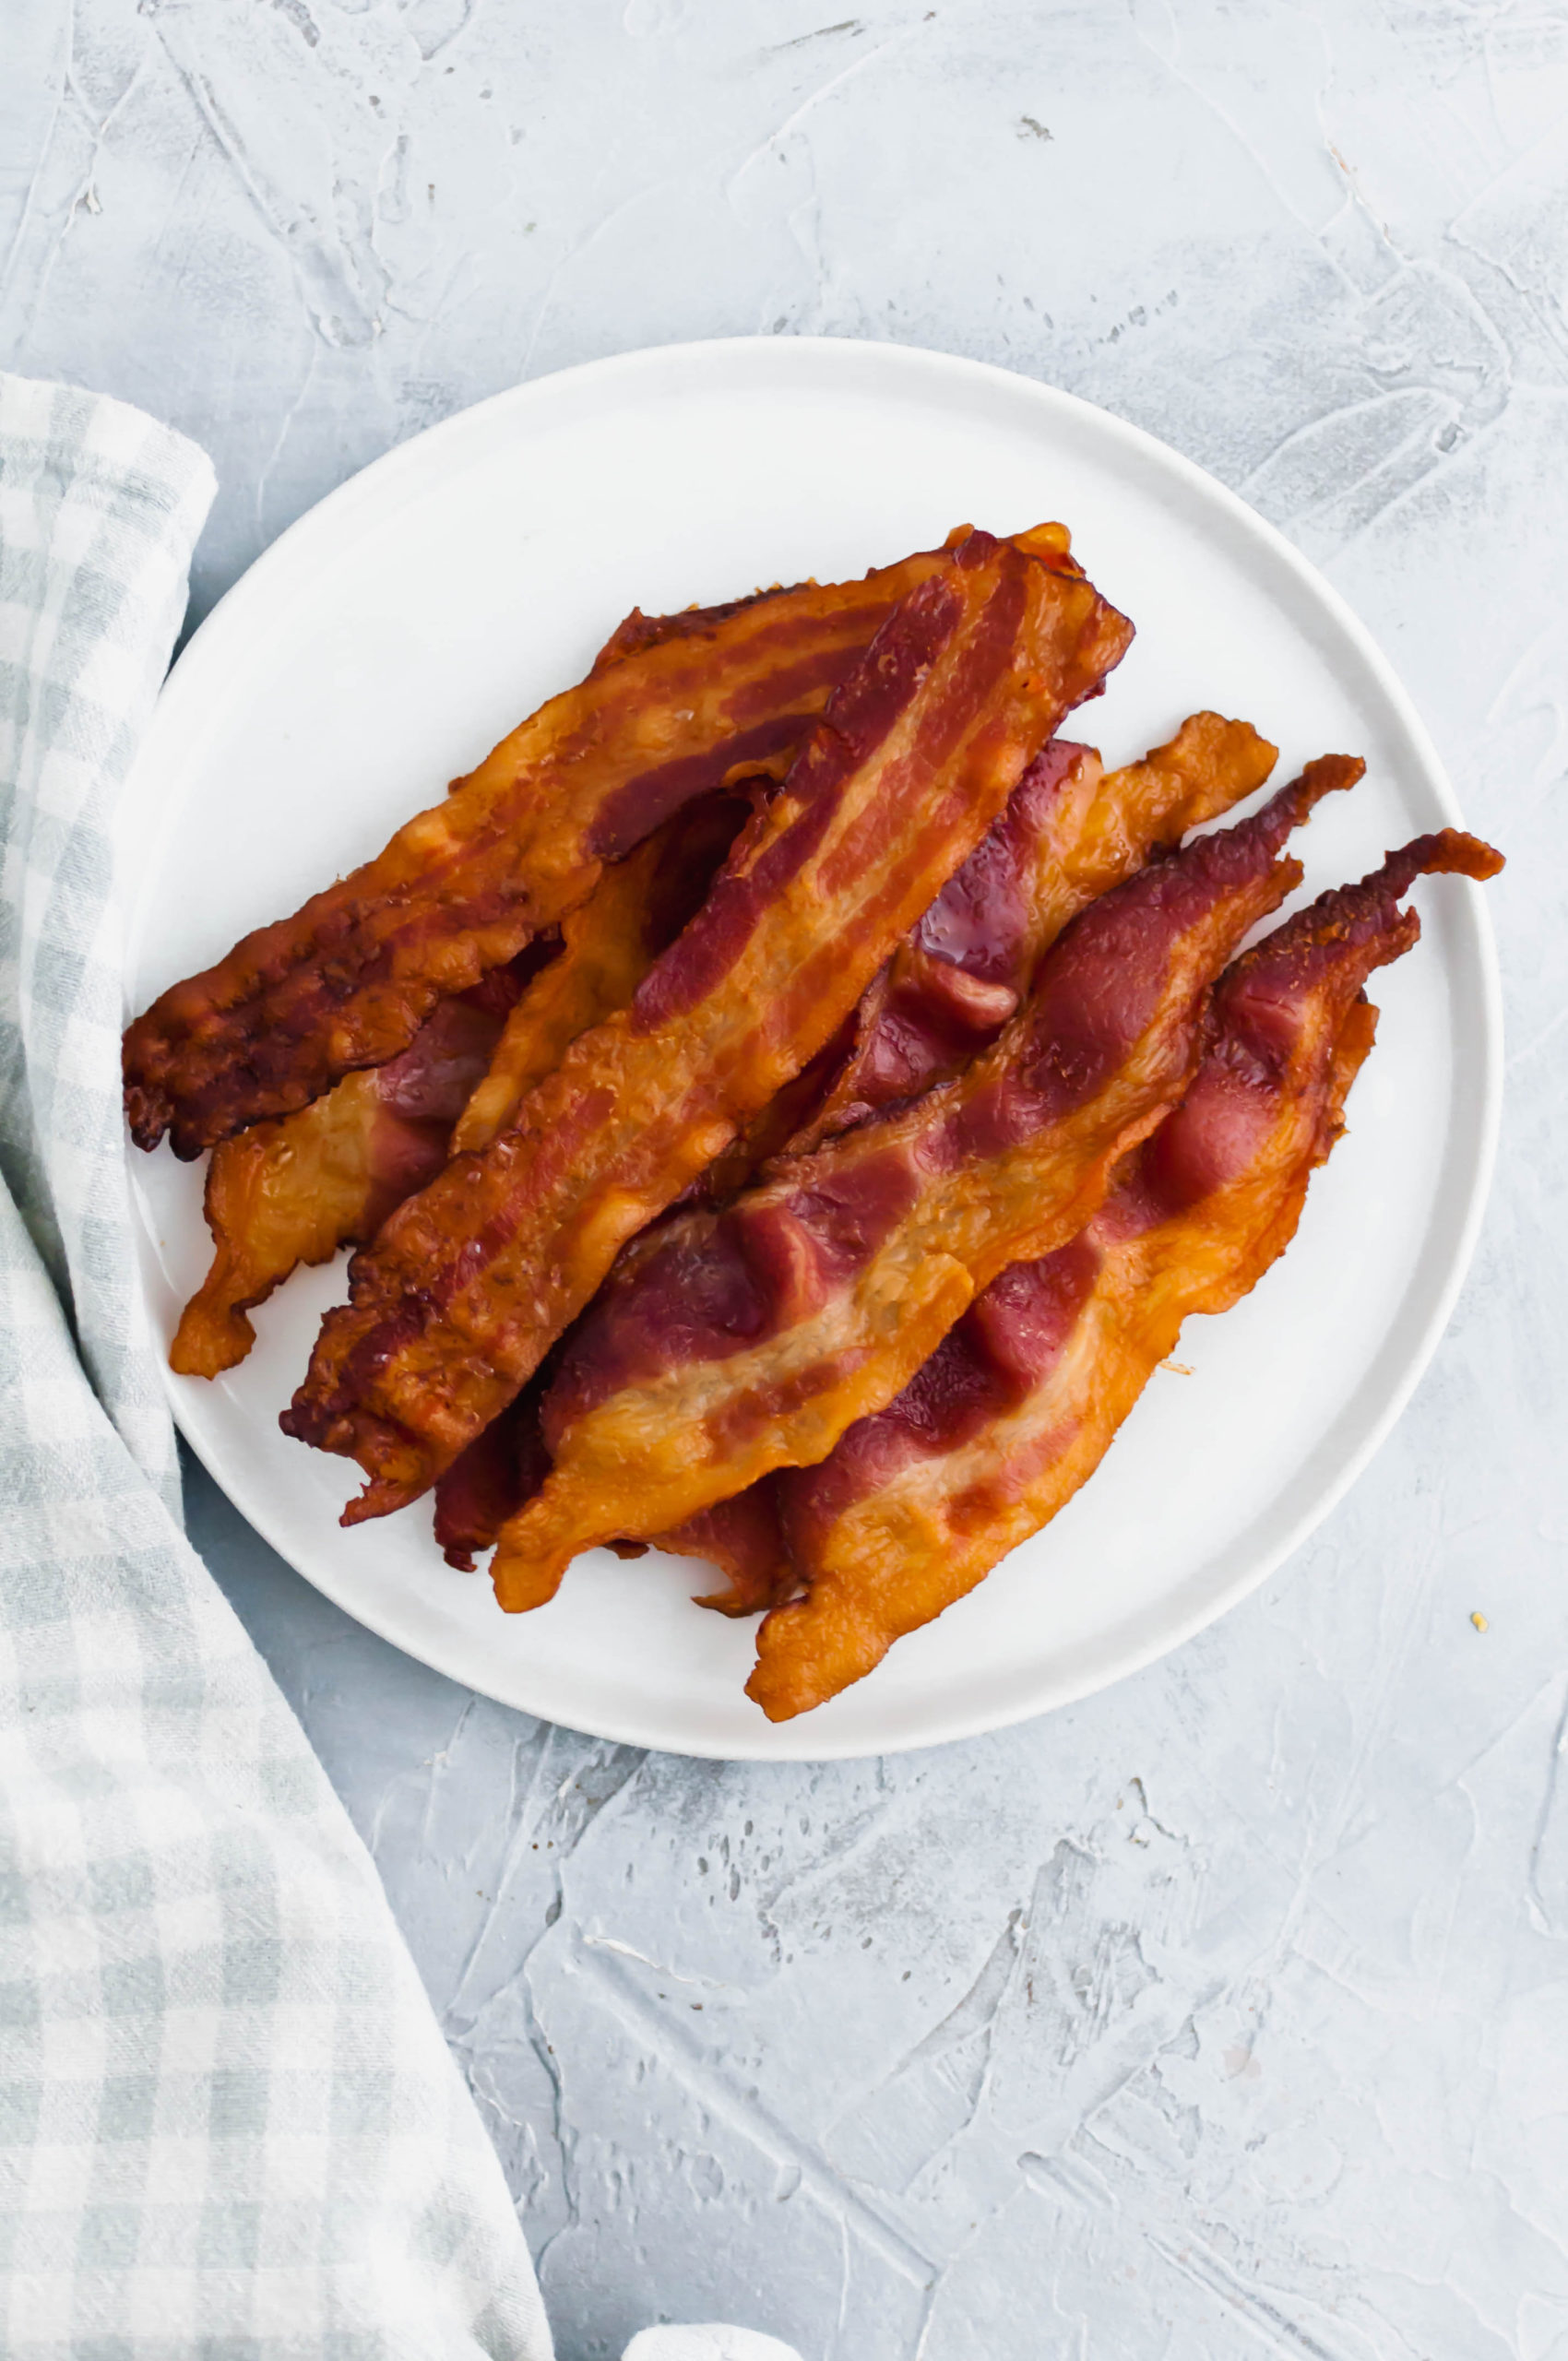 Today we're going to talk about How to Bake Bacon. It's the easiest and least messy way to prepare bacon and therefore my favorite.